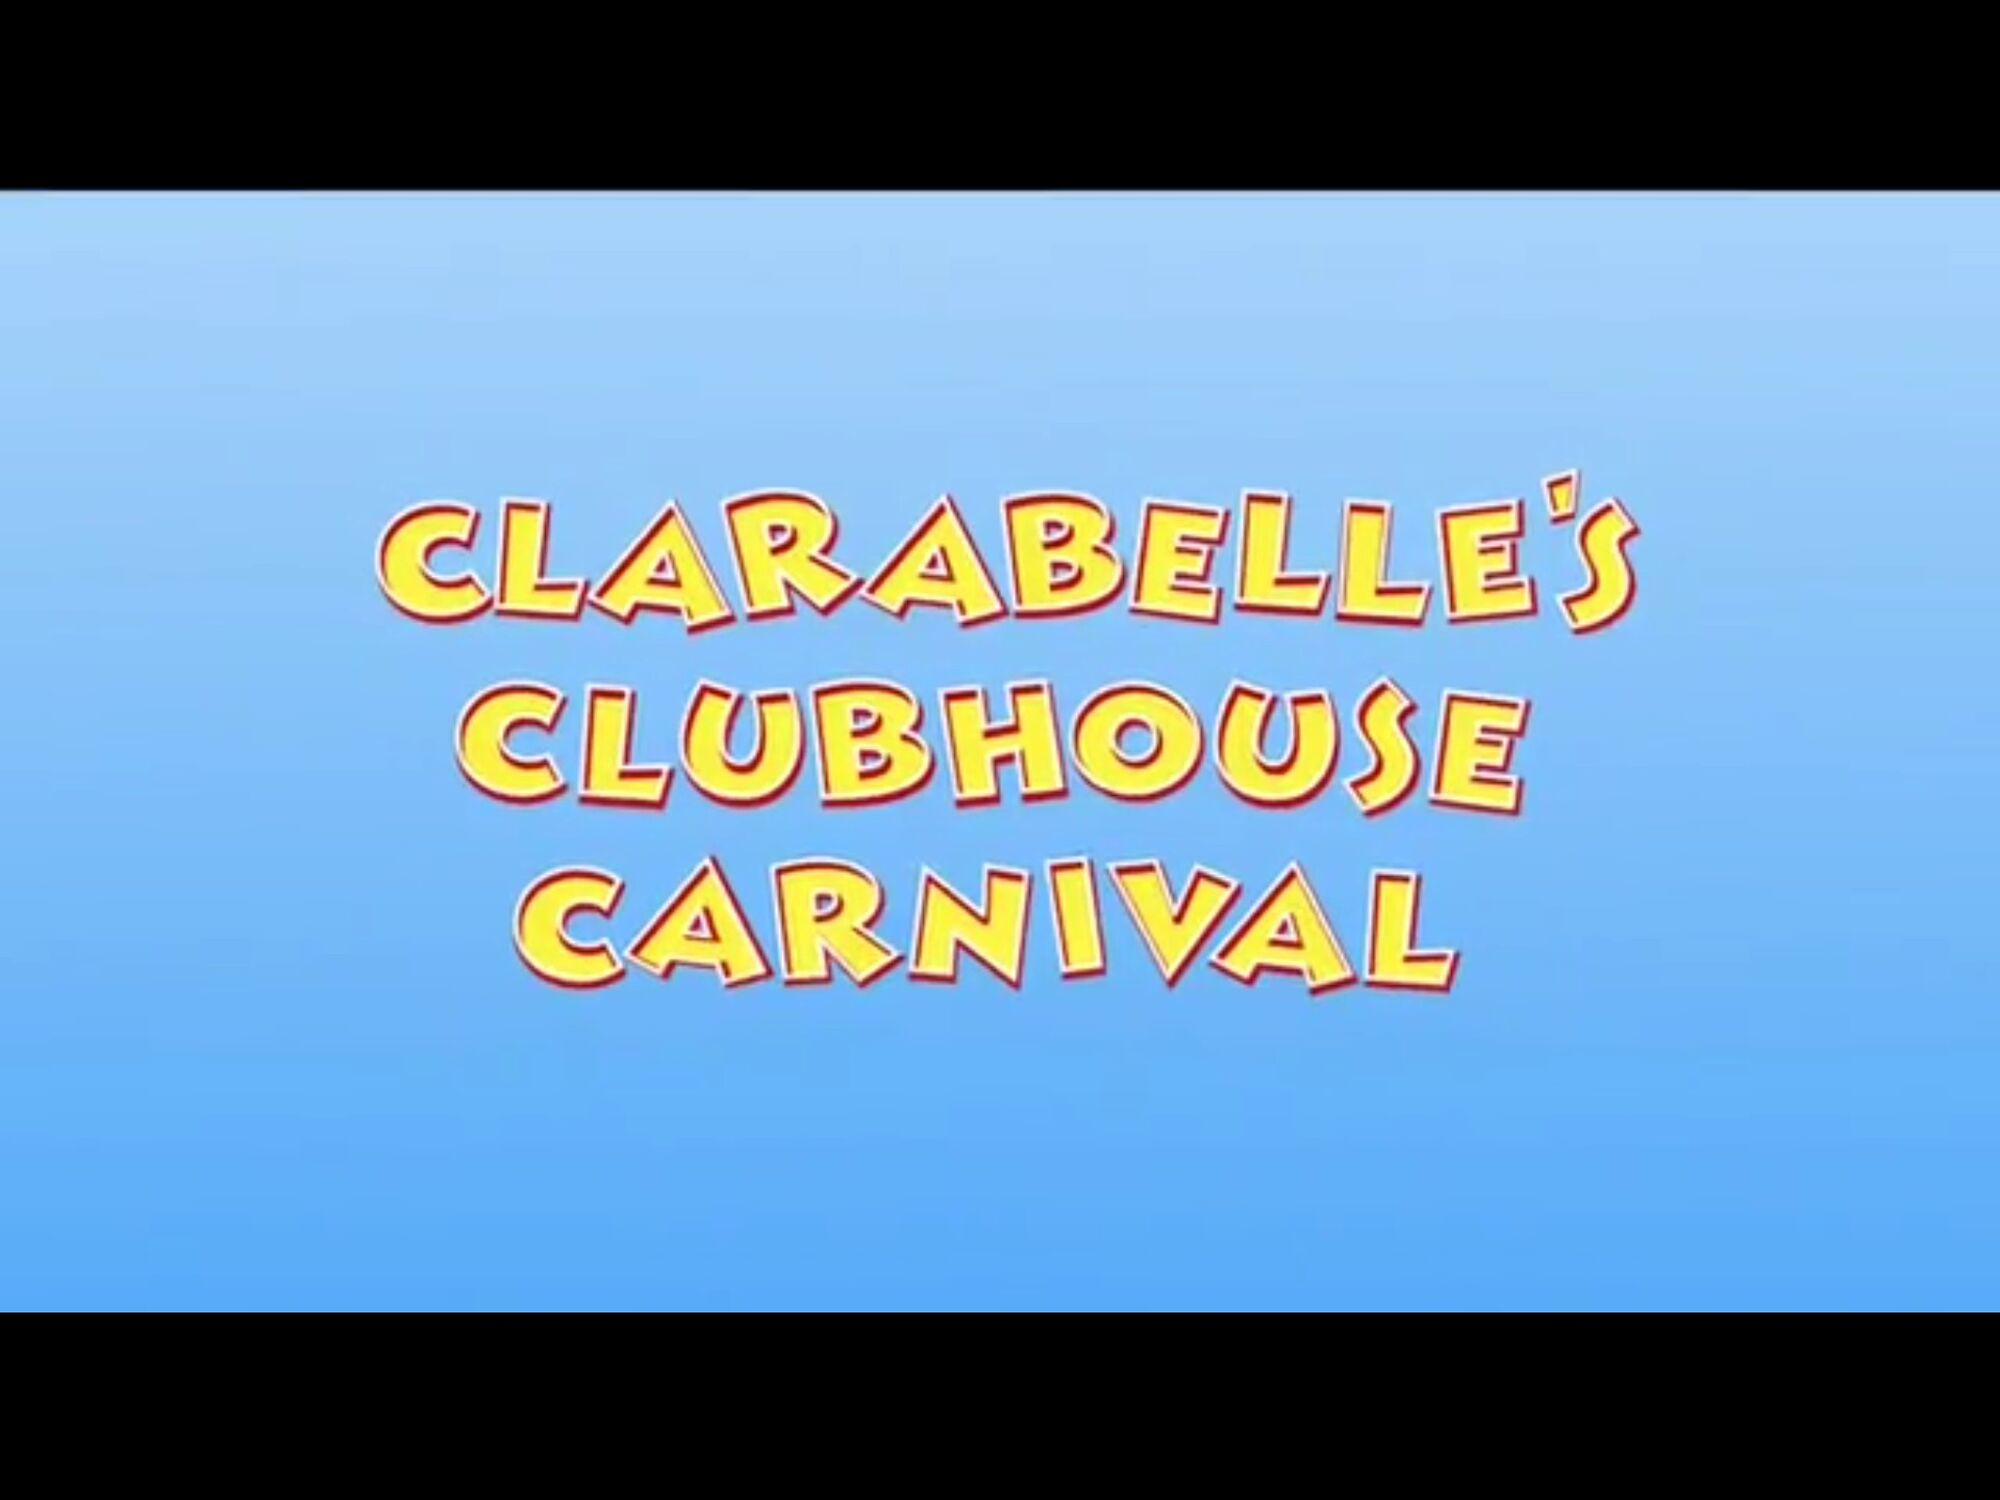 Clarabelle's Clubhouse Carnival